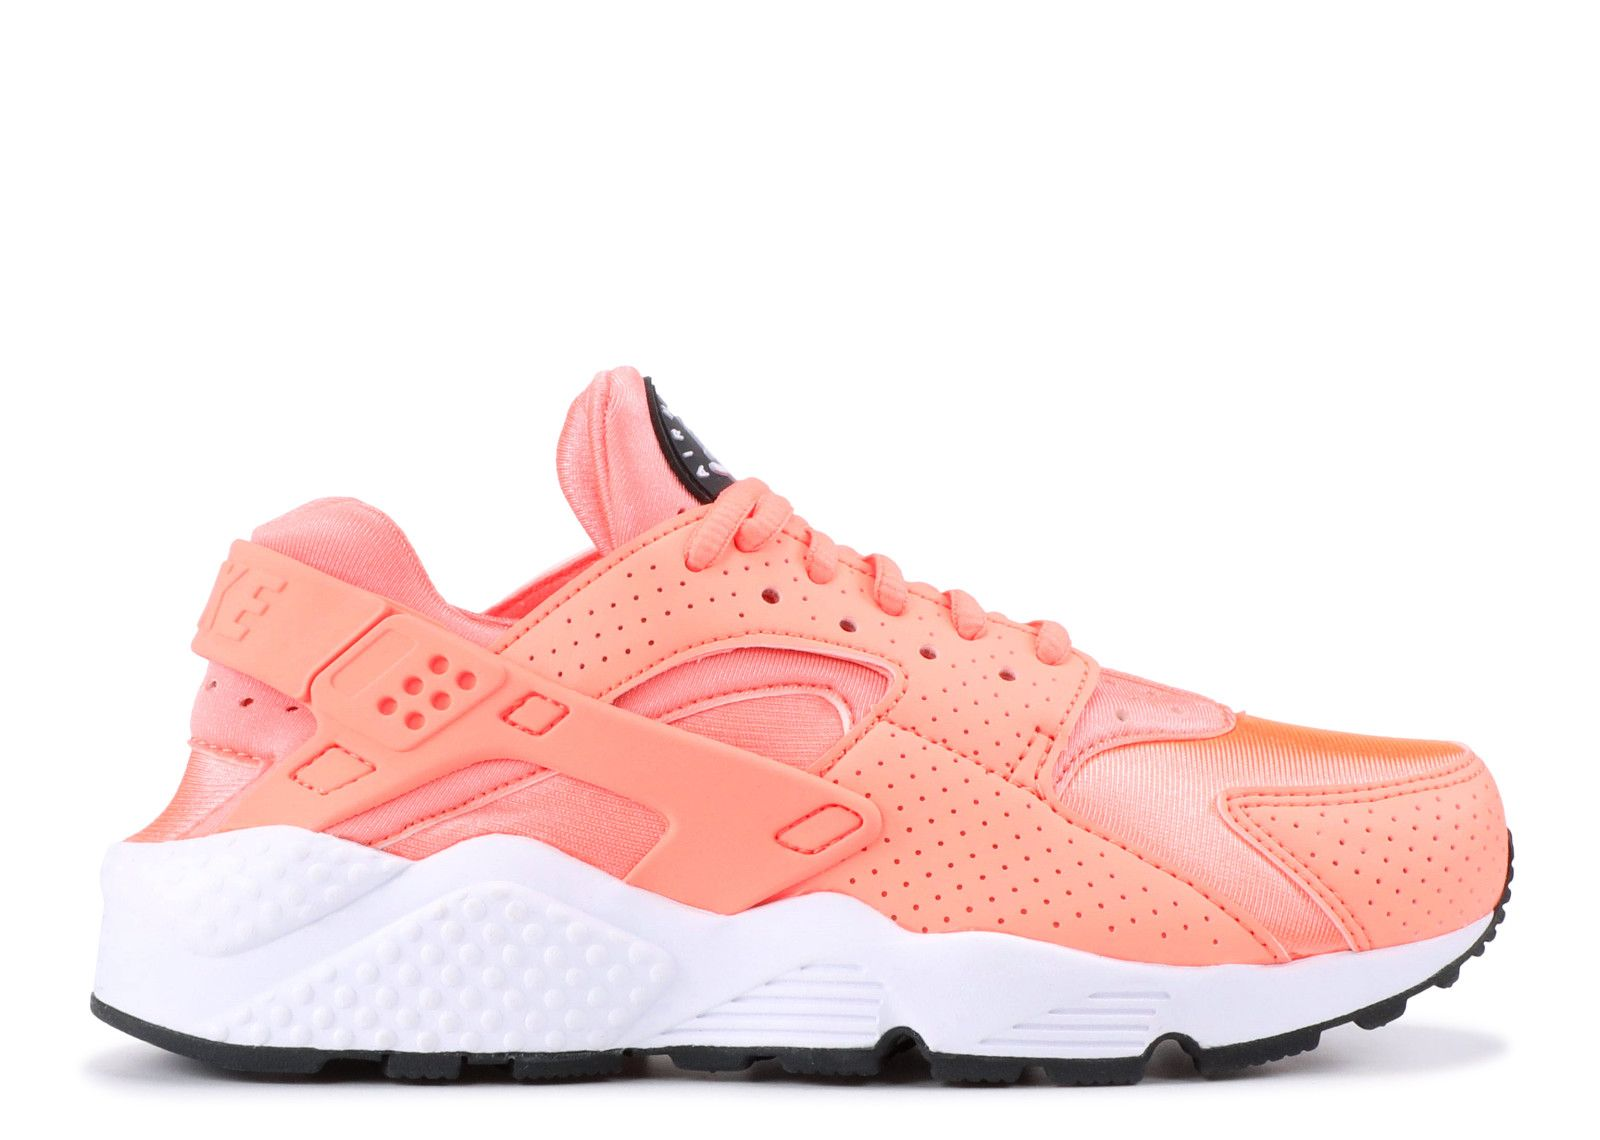 Nike Huaraches Shoes for Women & Men Flight Club  outfits in 2019